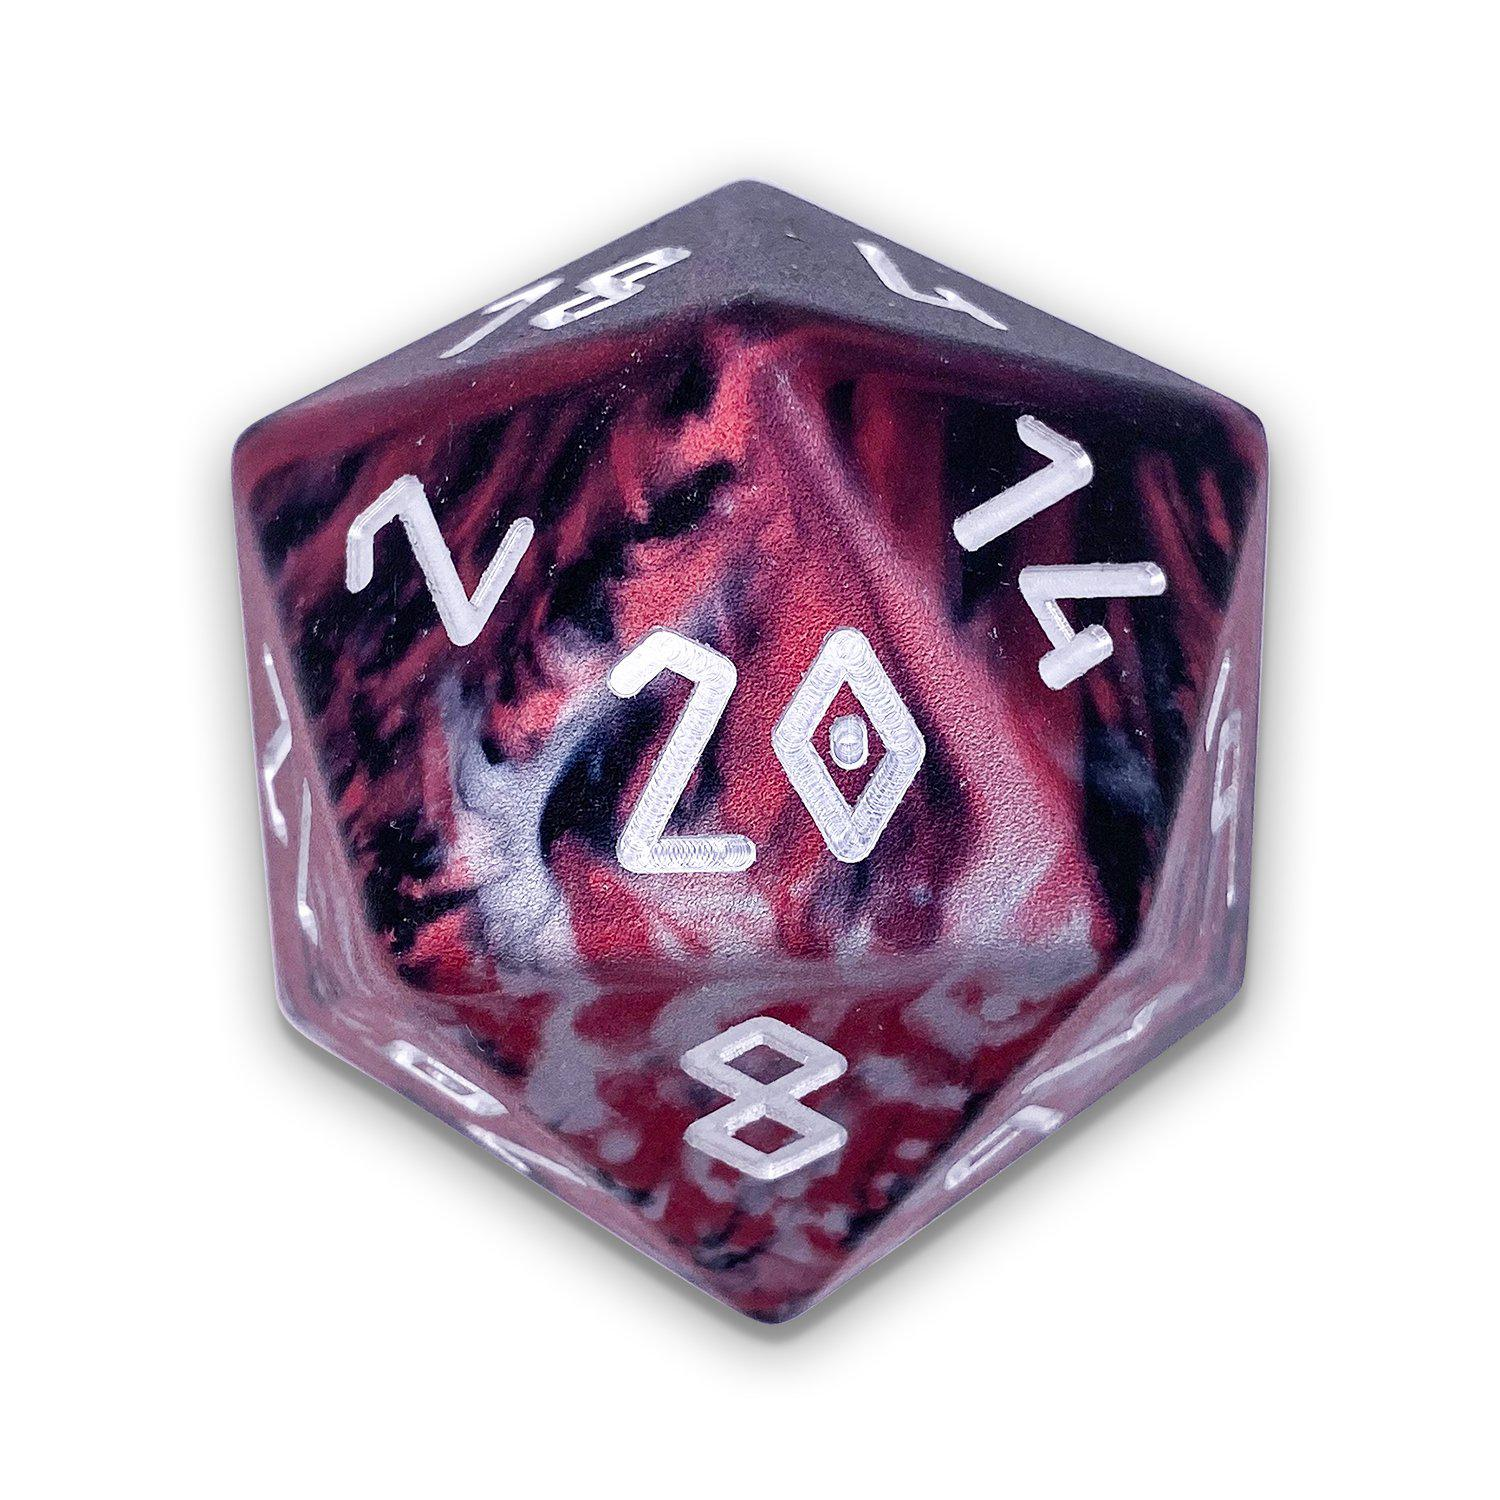 Lich King - Wondrous Boulder® 55mm D20 6063 Aircraft Grade Aluminum Metal Die